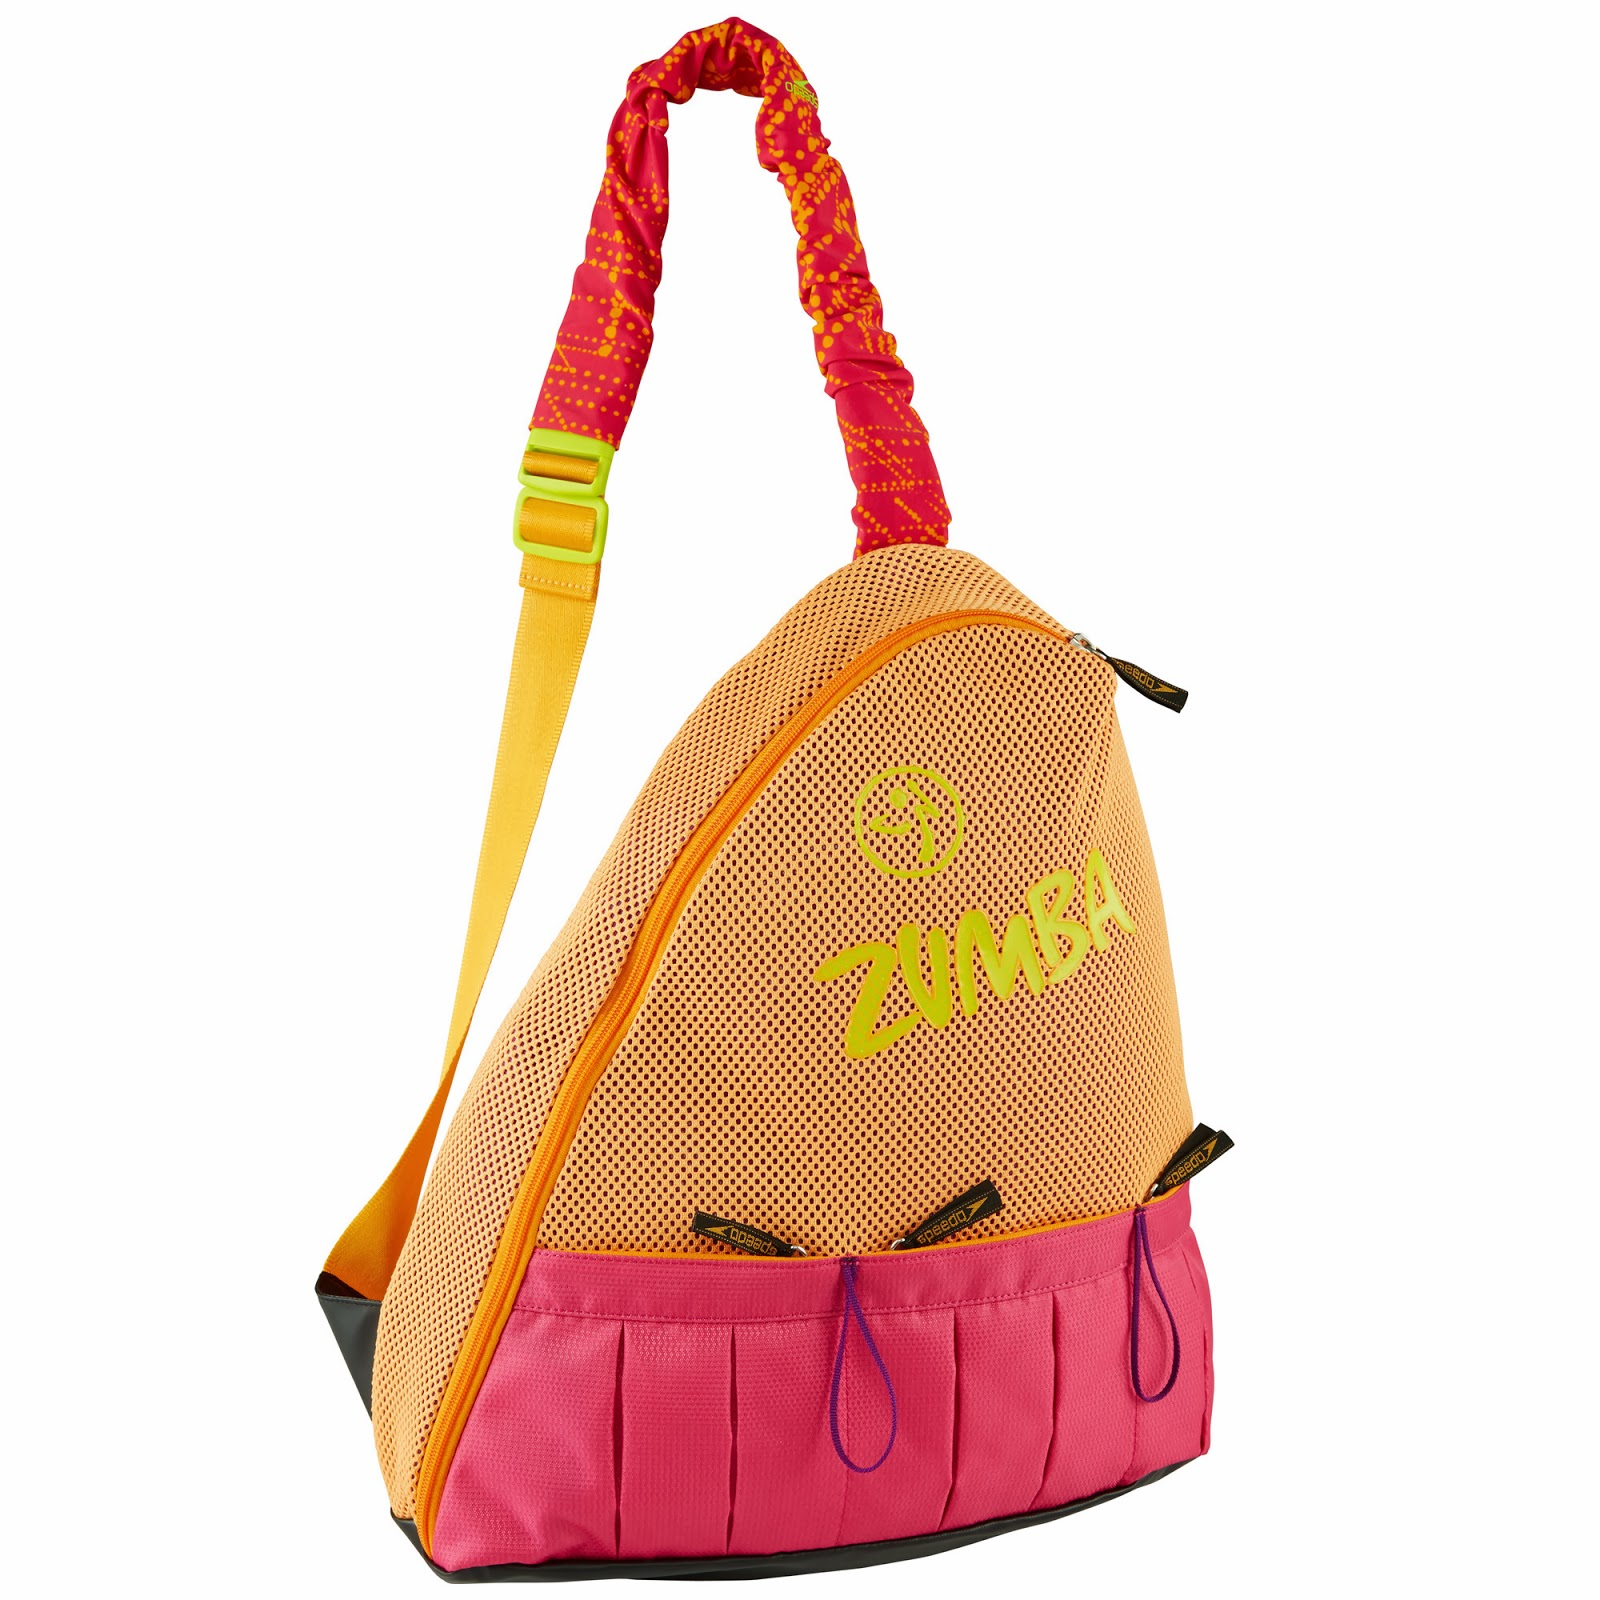 http://www.zumba.com/en-US/store-zin/US/product/funk-phenom-sling-bag?color=Blazing%20Orange